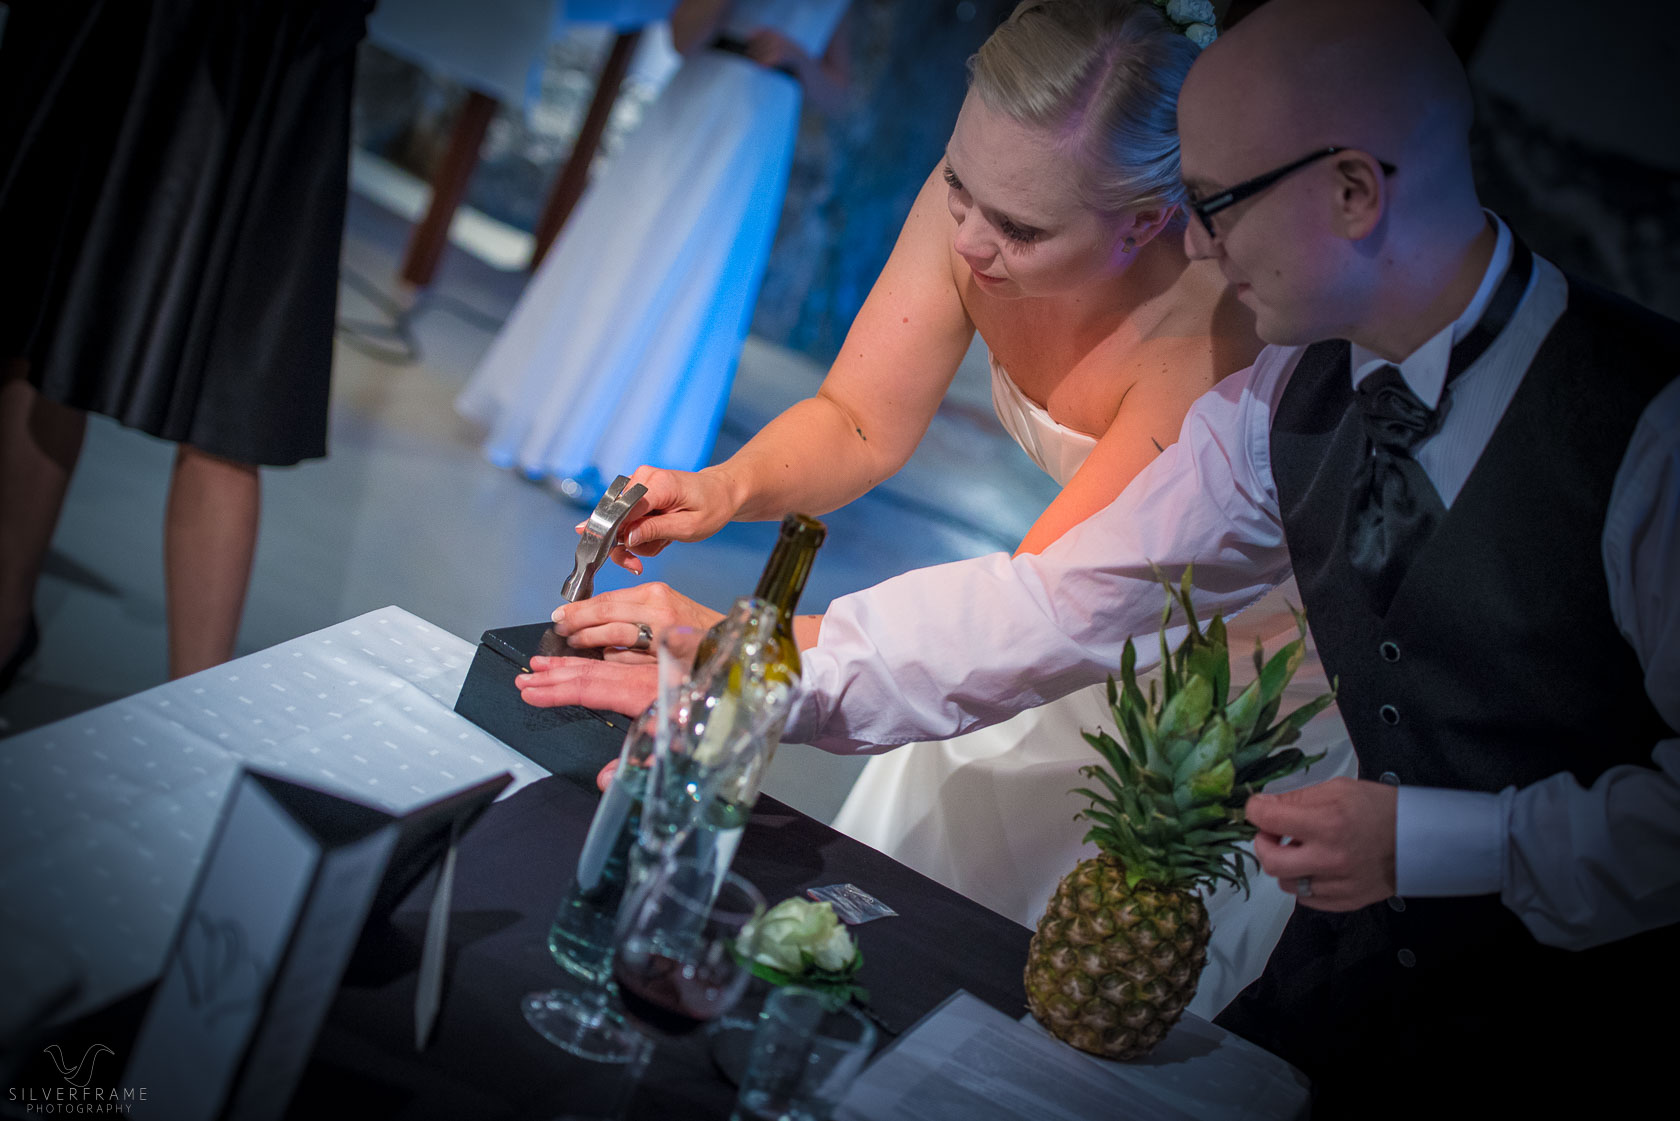 Haakuvaaja-Tampere-SilverFrame-Photography-Wedding-Photos-Wedding-Photographer-Jarno-J-Laine